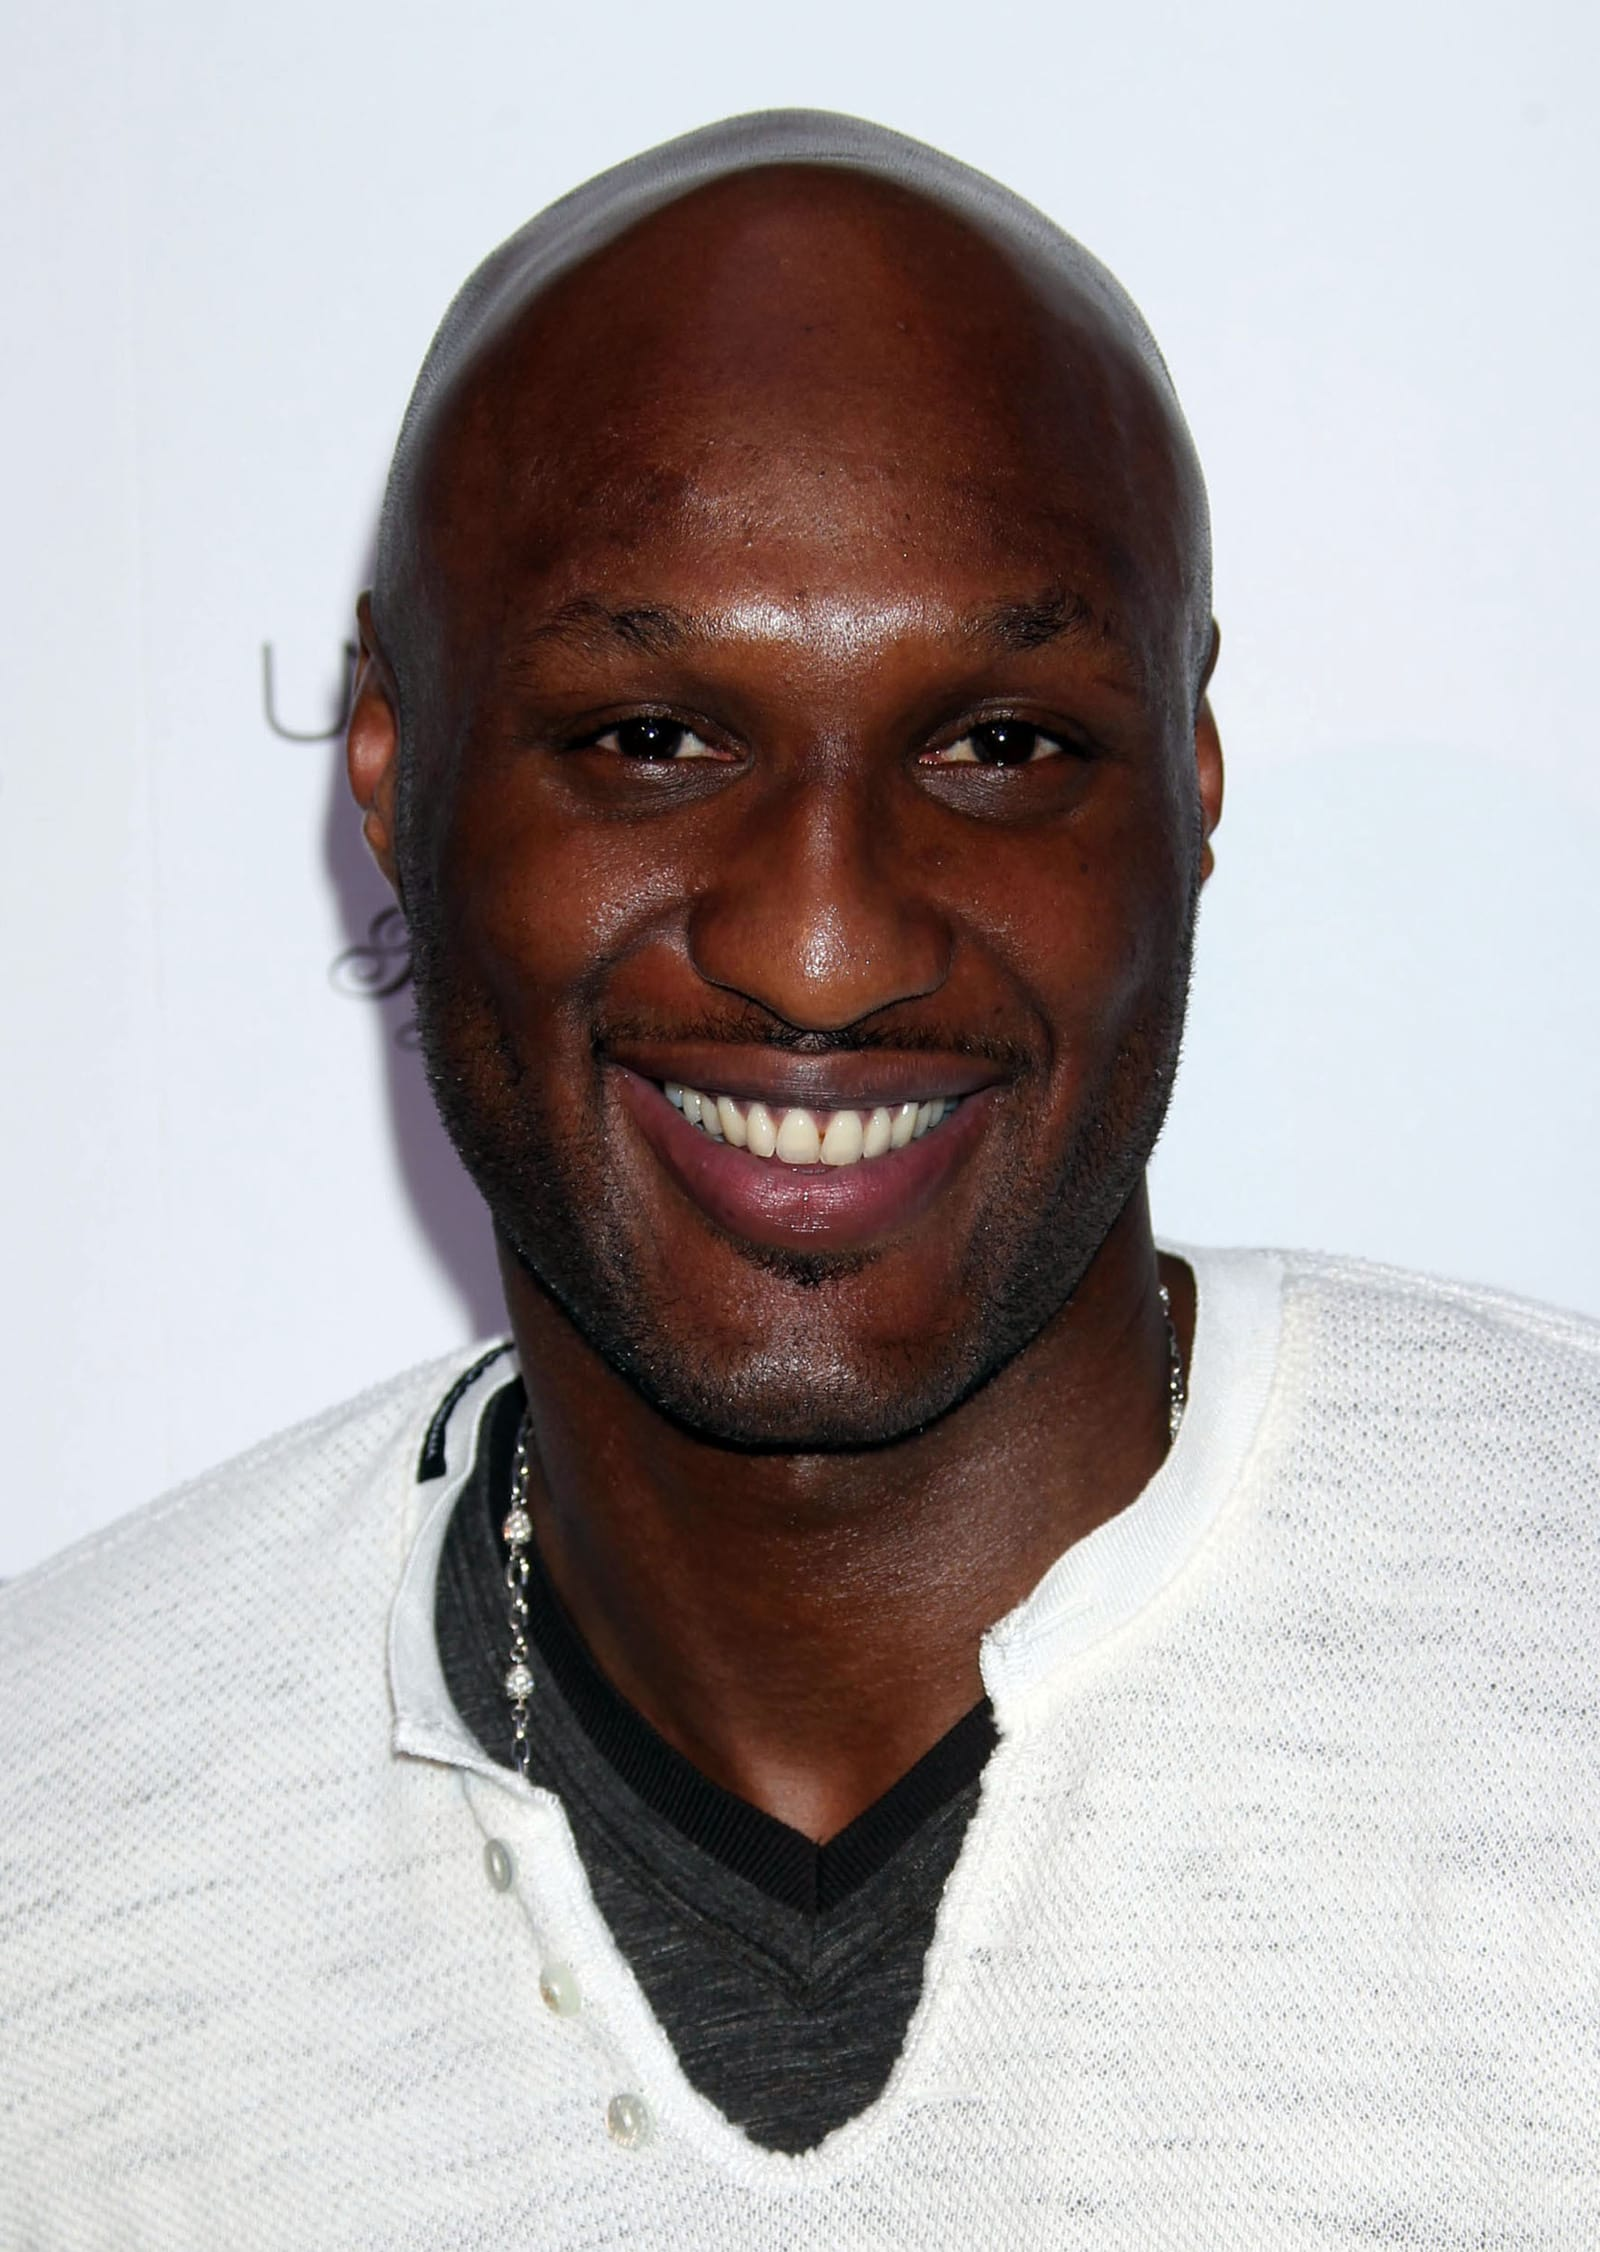 Lamar Odom The Heartbreaking Reason Behind His Rehab Stay The